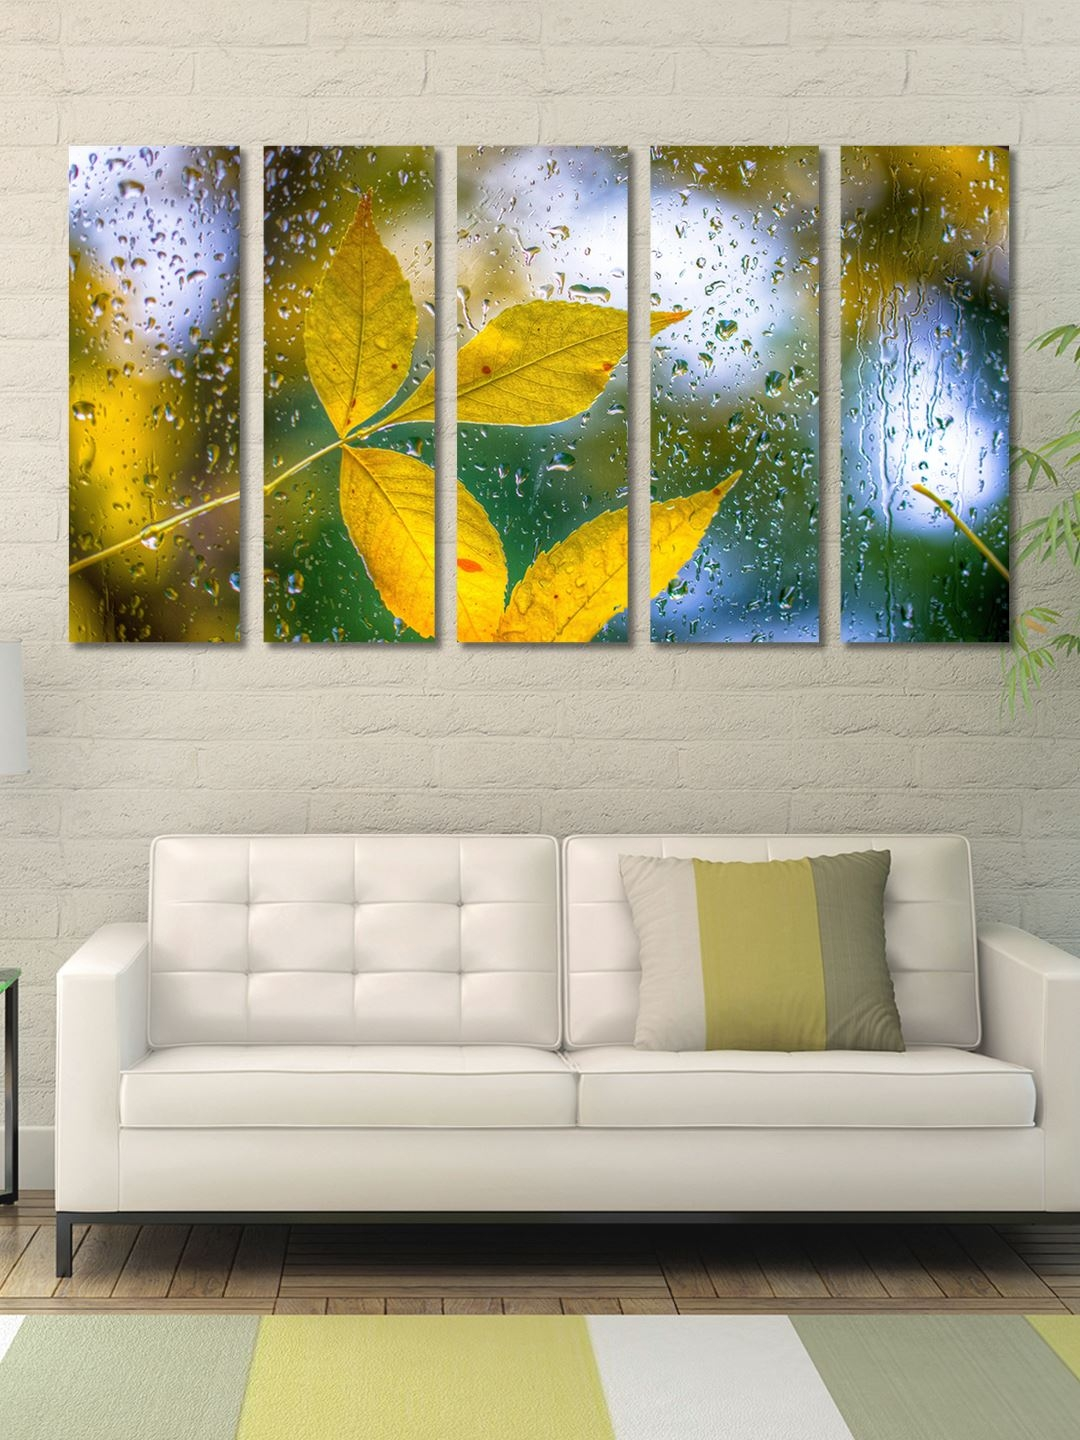 999Store Yellow   Green 5 Panel Leaves Wall Art